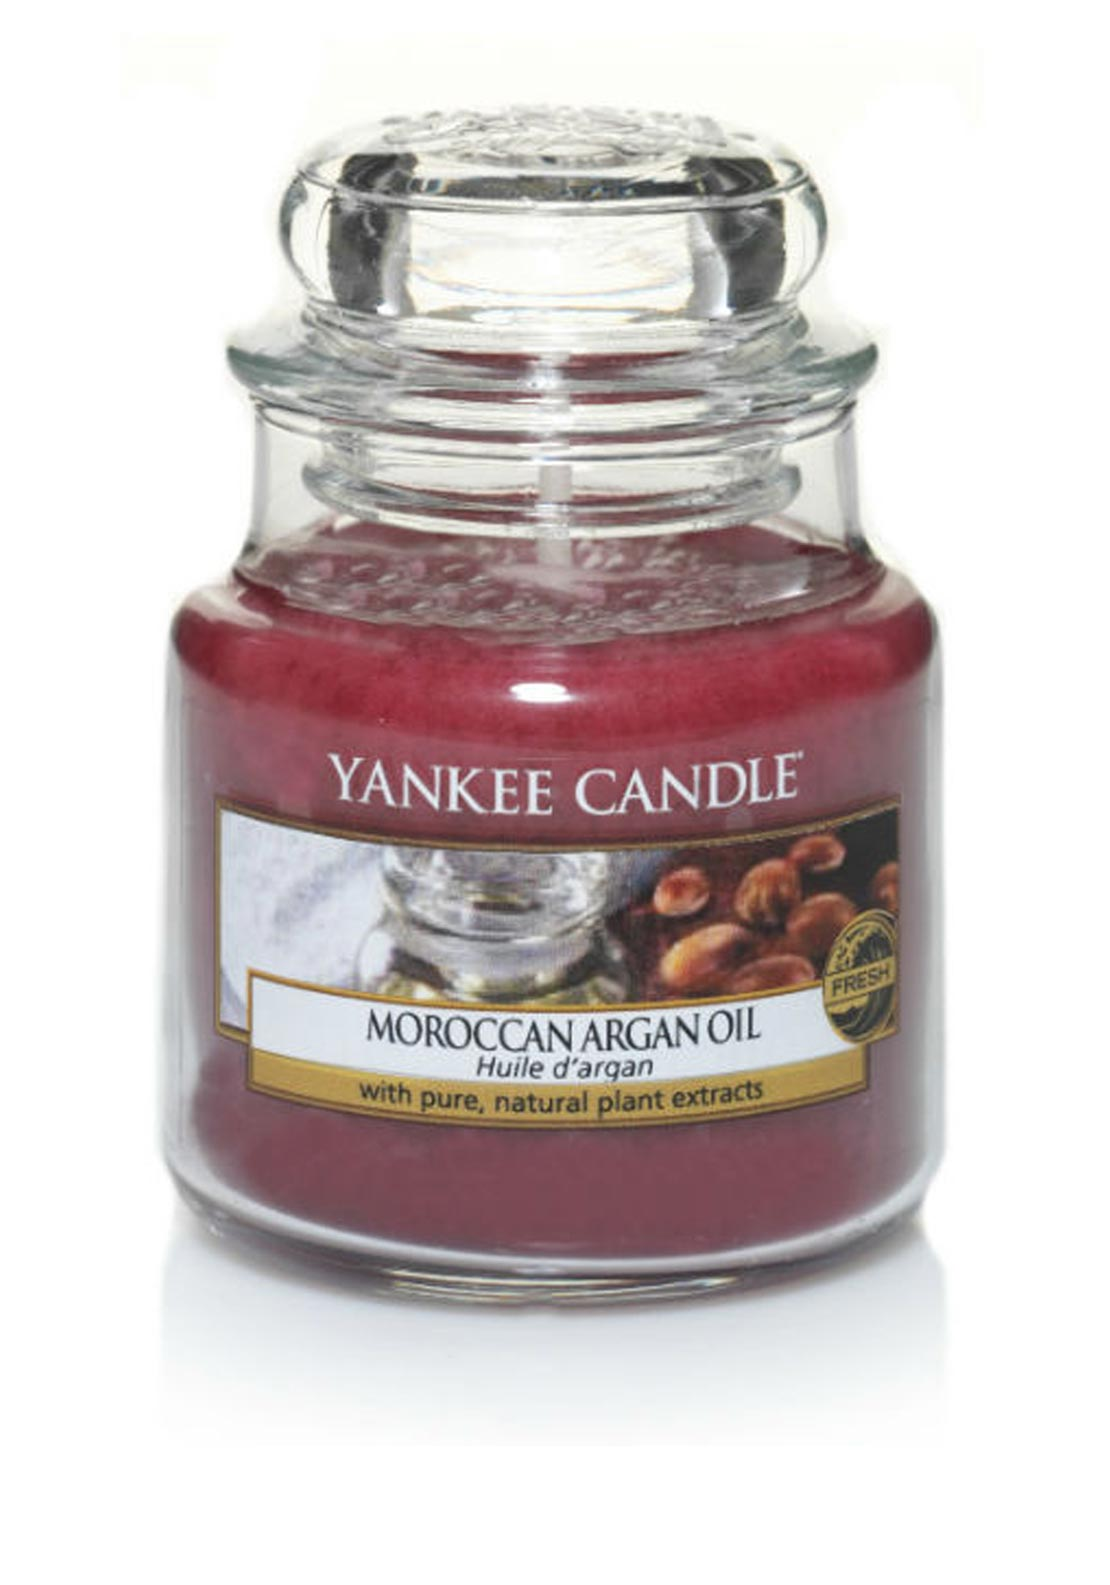 Yankee Candle Medium Classic Jar, Moroccan Argan Oil